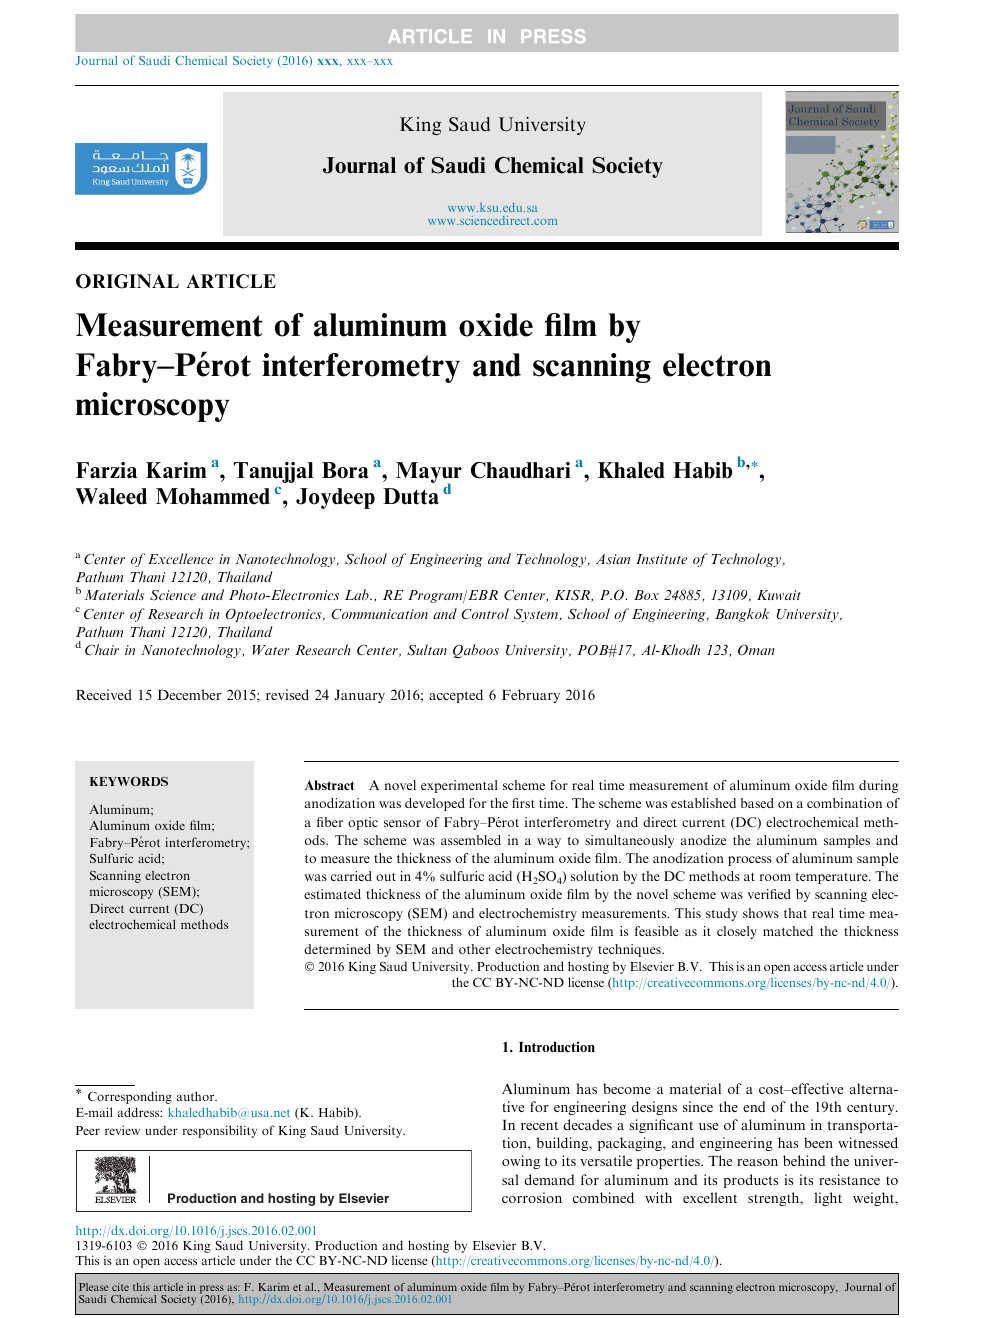 Measurement of aluminum oxide film by Fabry–Pérot